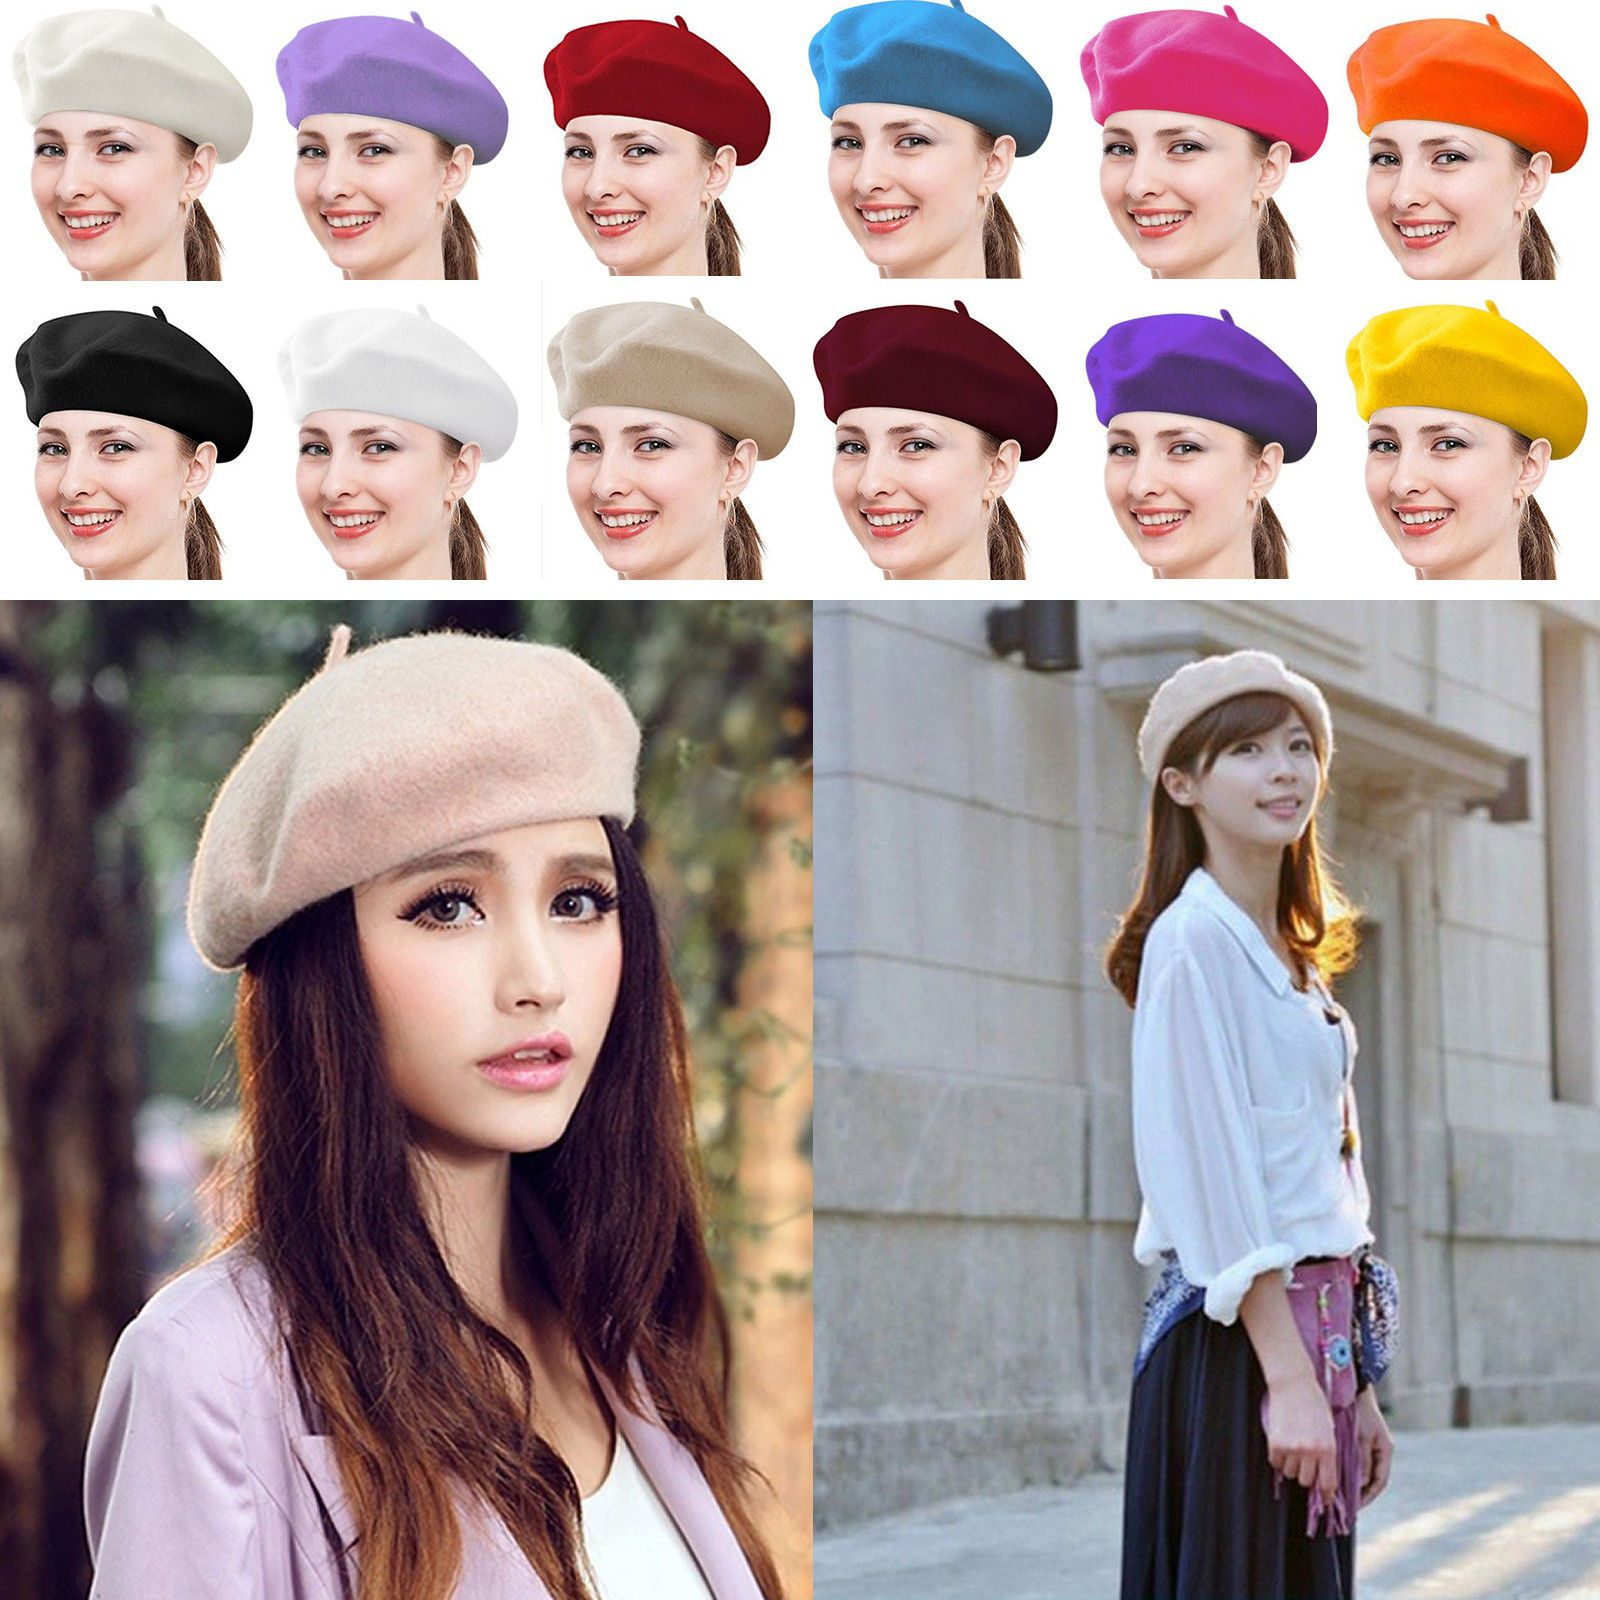 c2b53dc7bc2cc Fashion Warm Wool Winter Women Girl Beret French Artist Beanie Hat Ski Cap  Gift Price   3.39 Ends on   2 hours View on eBay